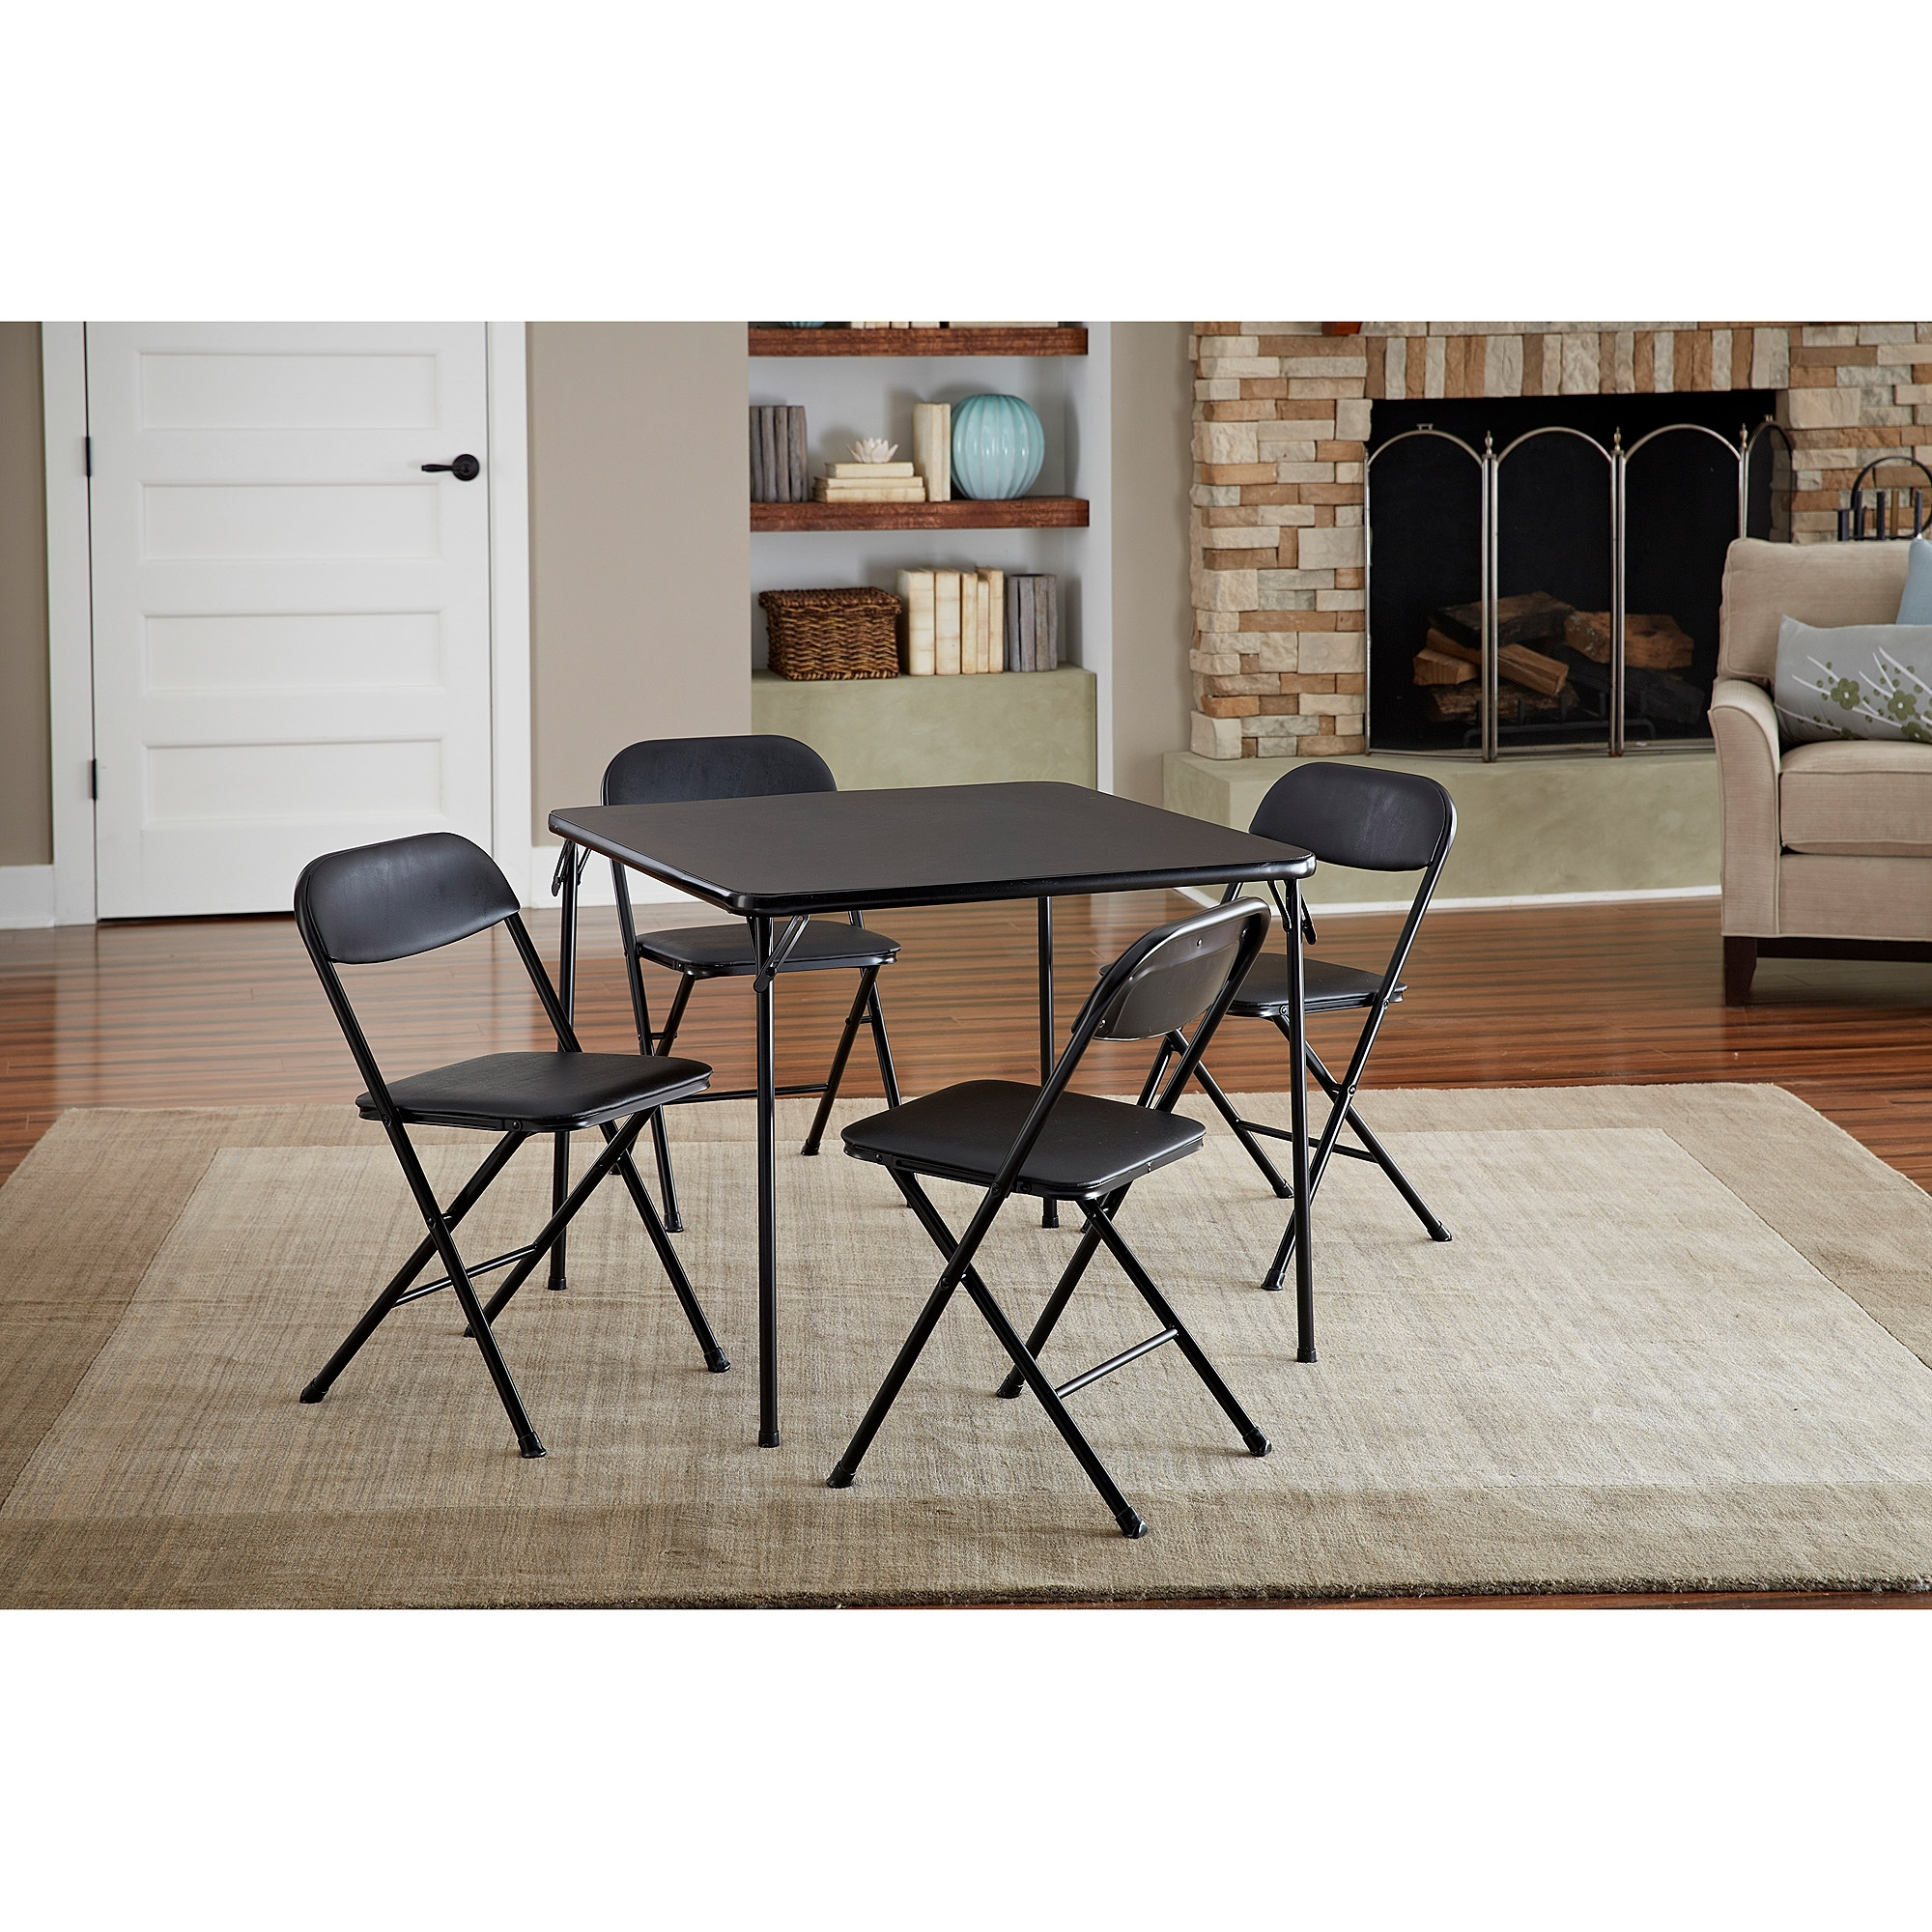 Cosco 5 Piece Card Table Set, Black – Walmart Within Most Recent Dining Tables With Fold Away Chairs (View 4 of 25)